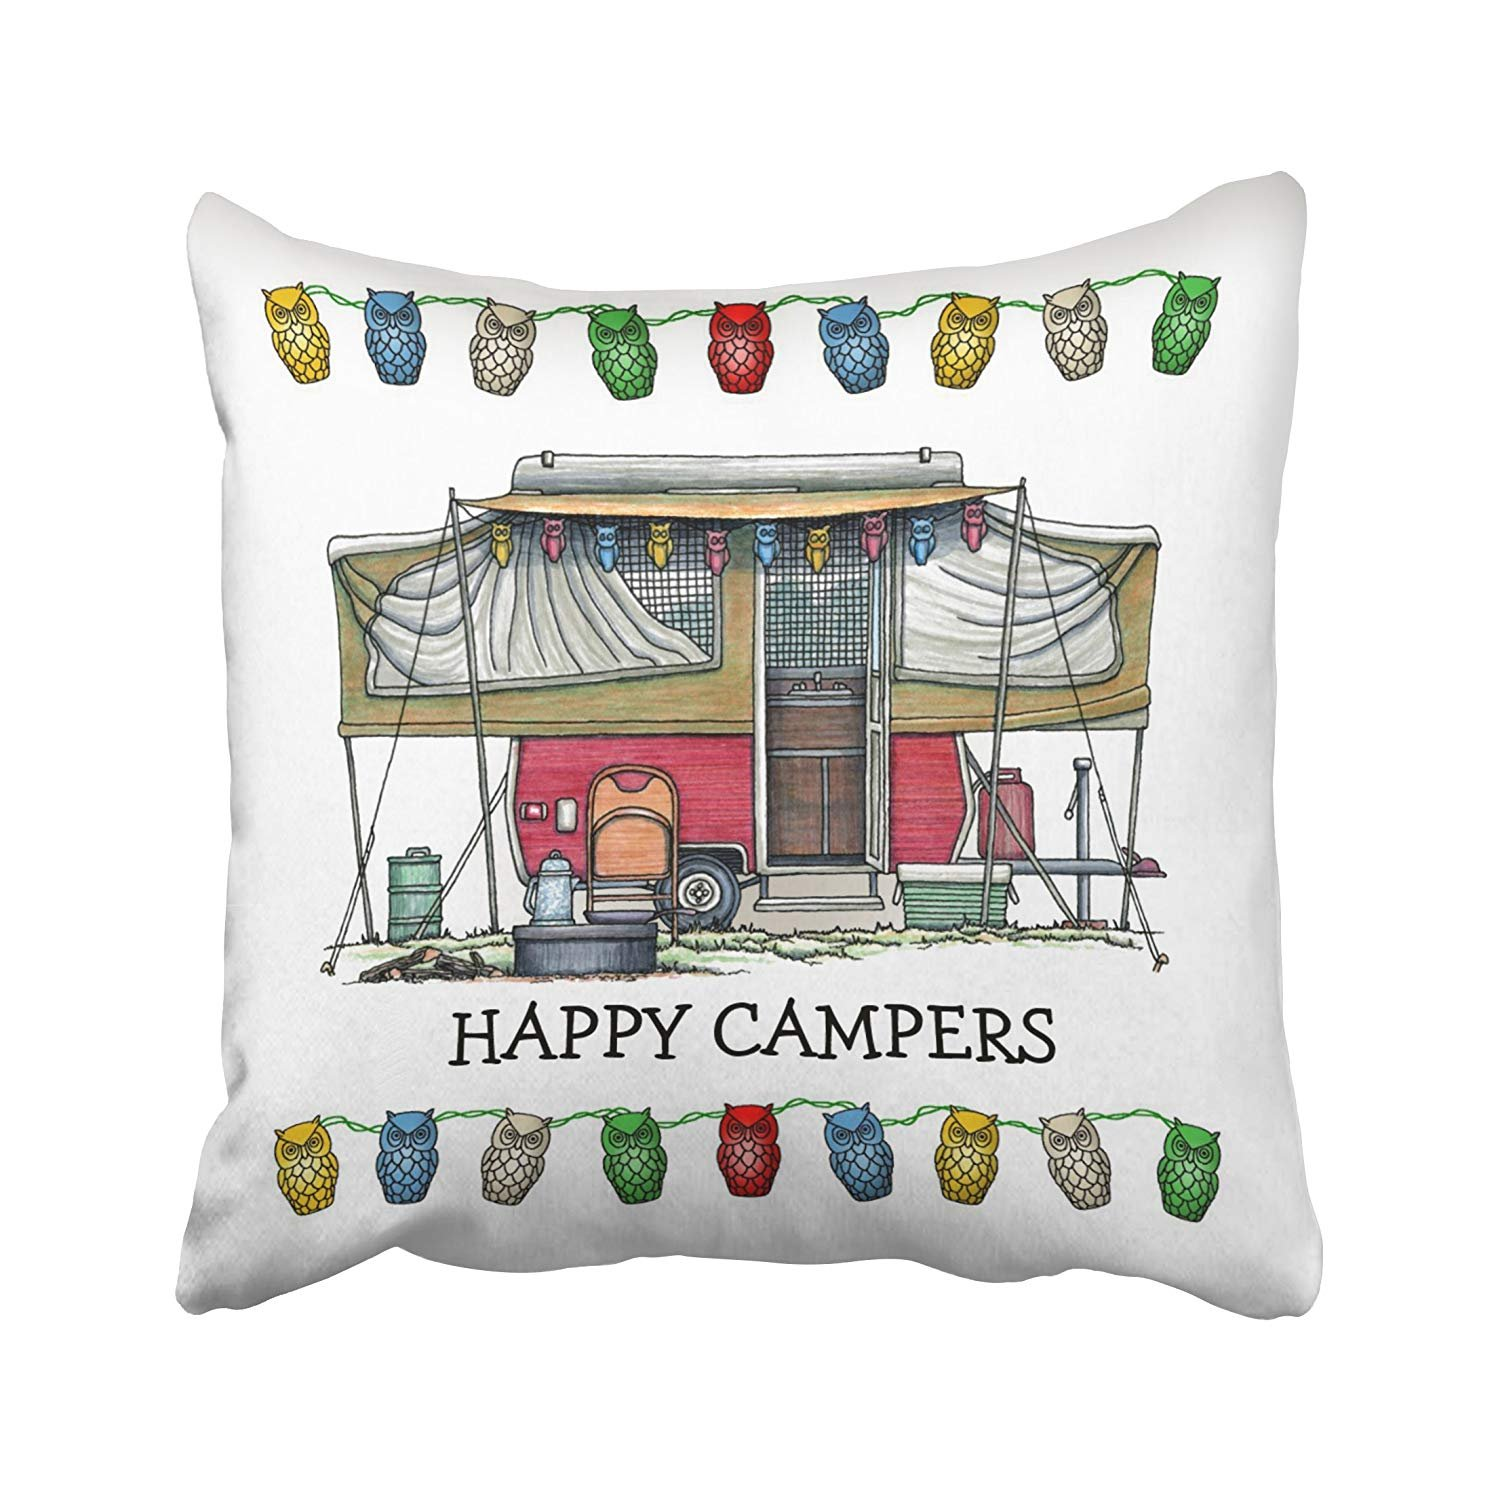 rylablue set of 4 pillow cases happy camper trailer camping cute rv vintage popup travel retro throw pillowcase cover cushion case home decor